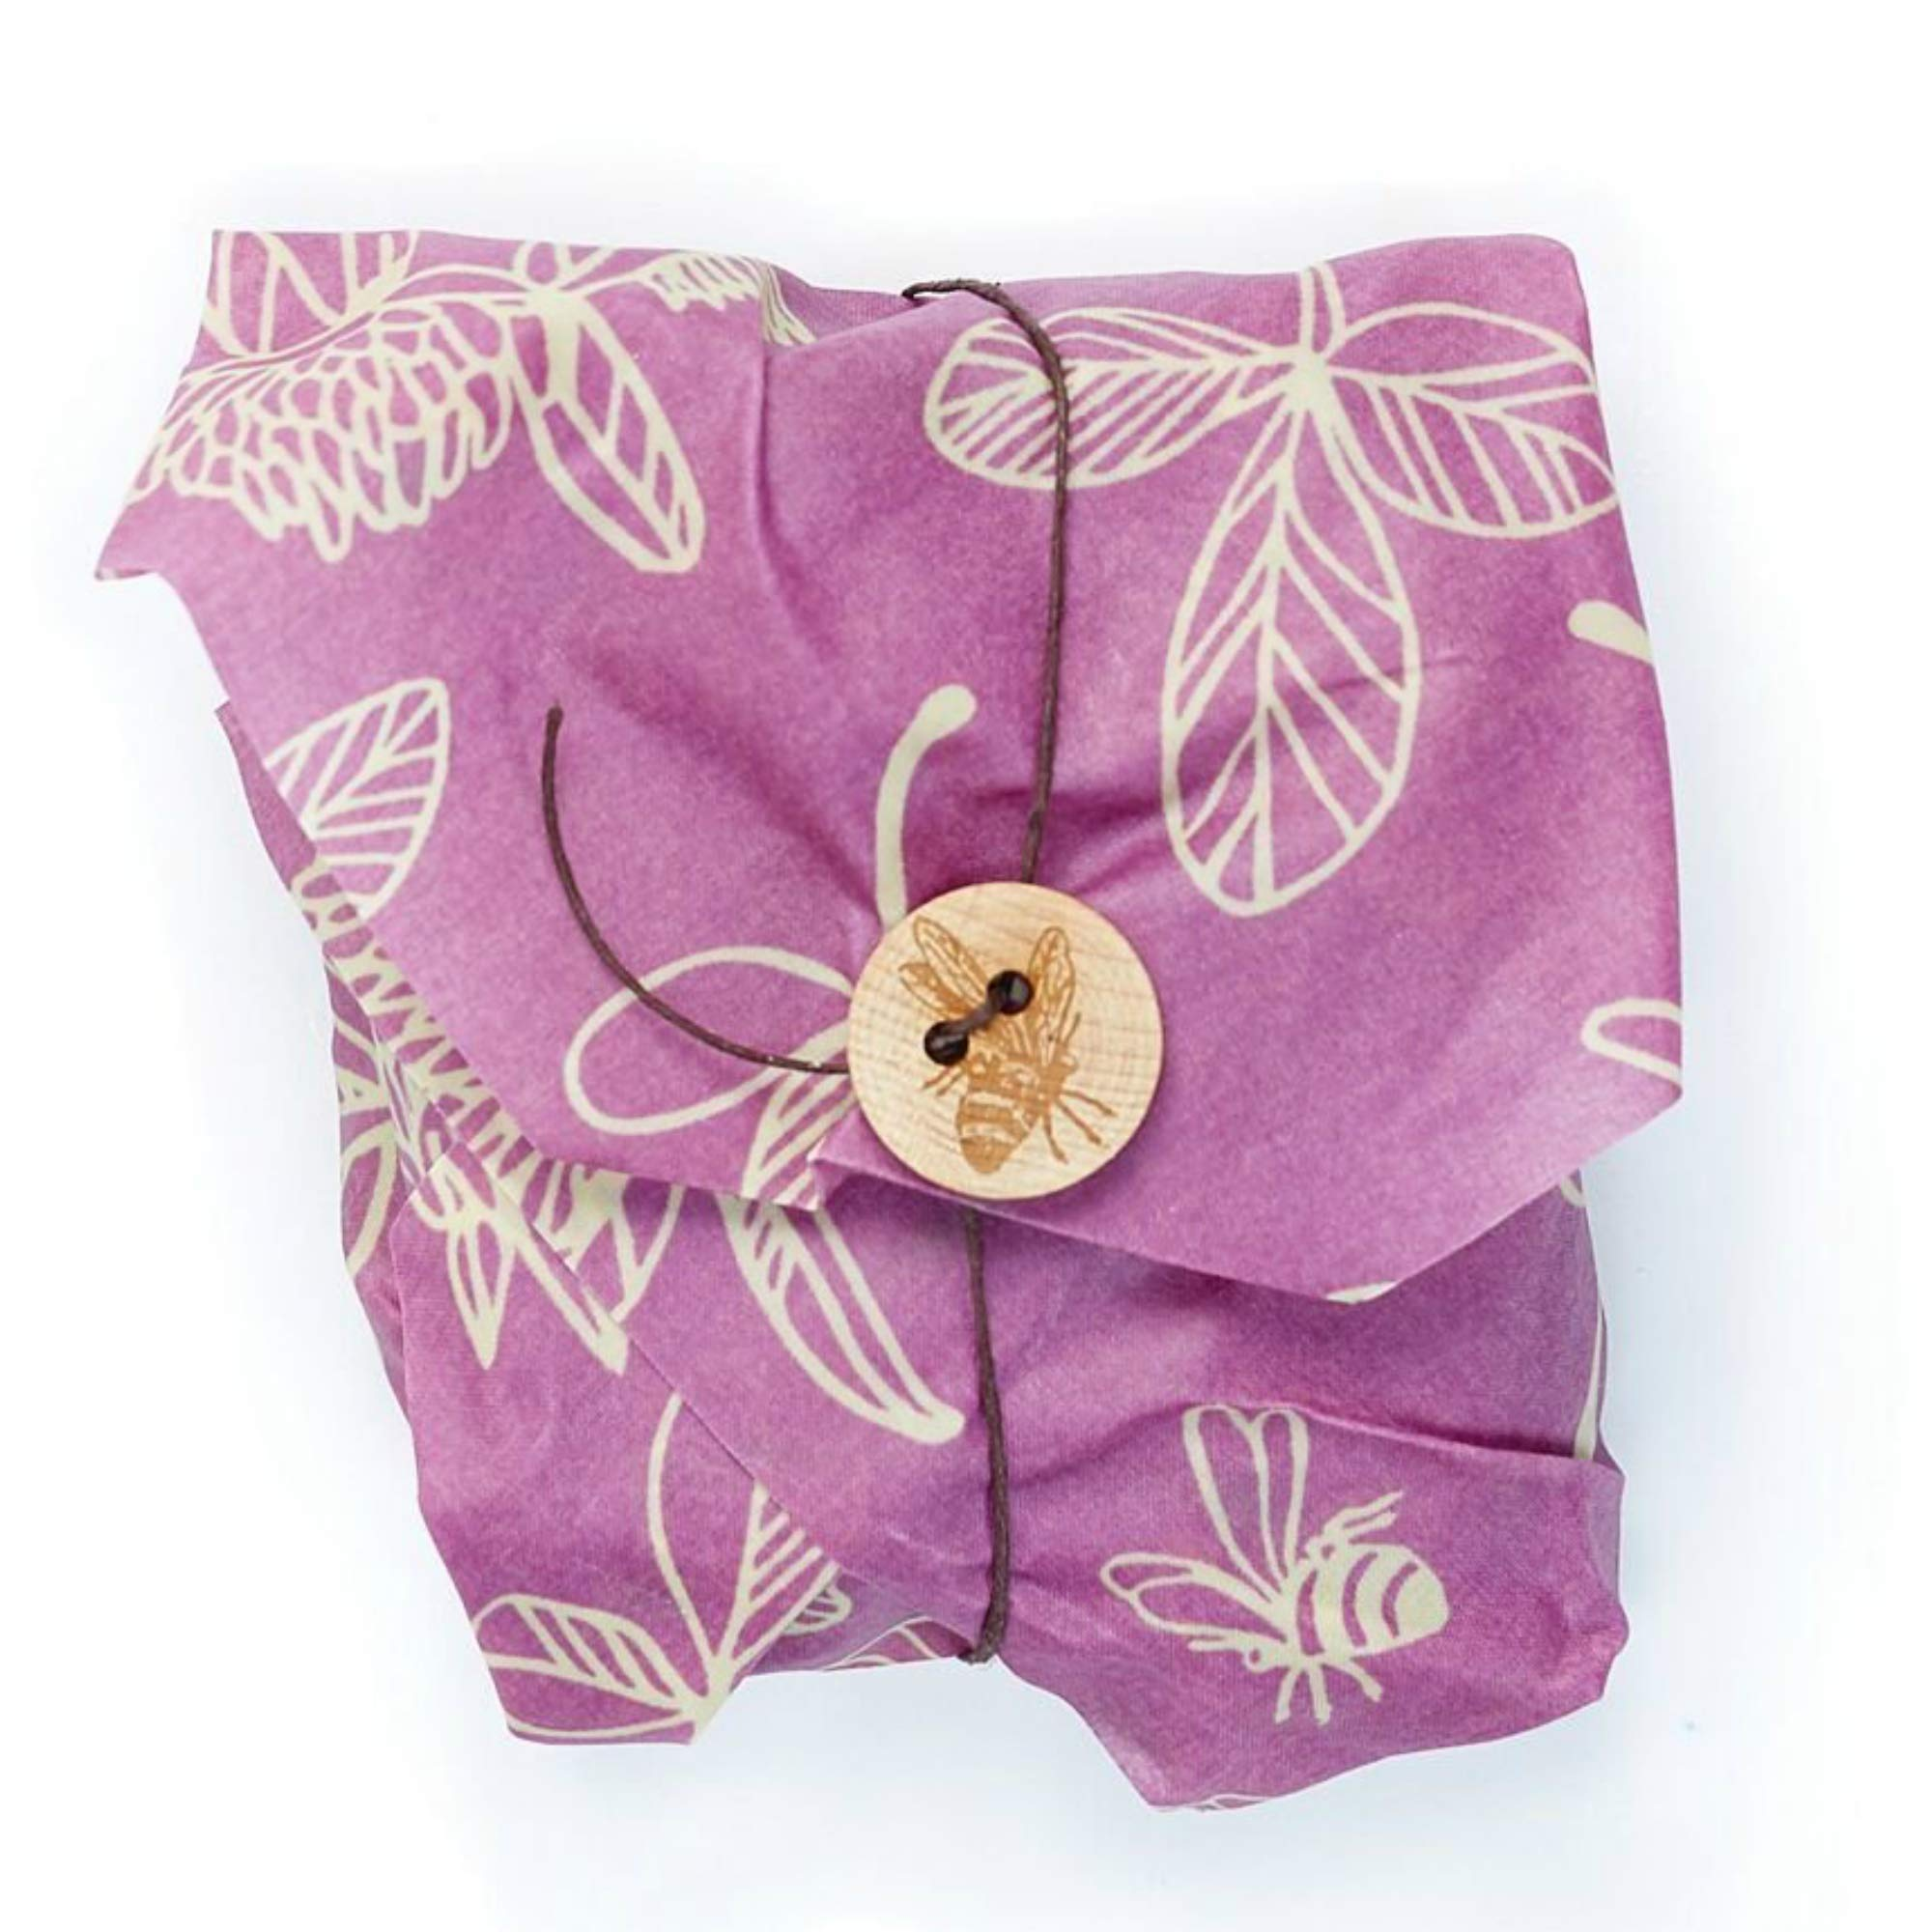 Bee's Wrap Sandwich Wrap, Eco Friendly Reusable Beeswax Food Wrap, Sustainable, Zero Waste, Plastic Free Alternative for Wrapping Sandwiches (Clover Print) by Bee's Wrap